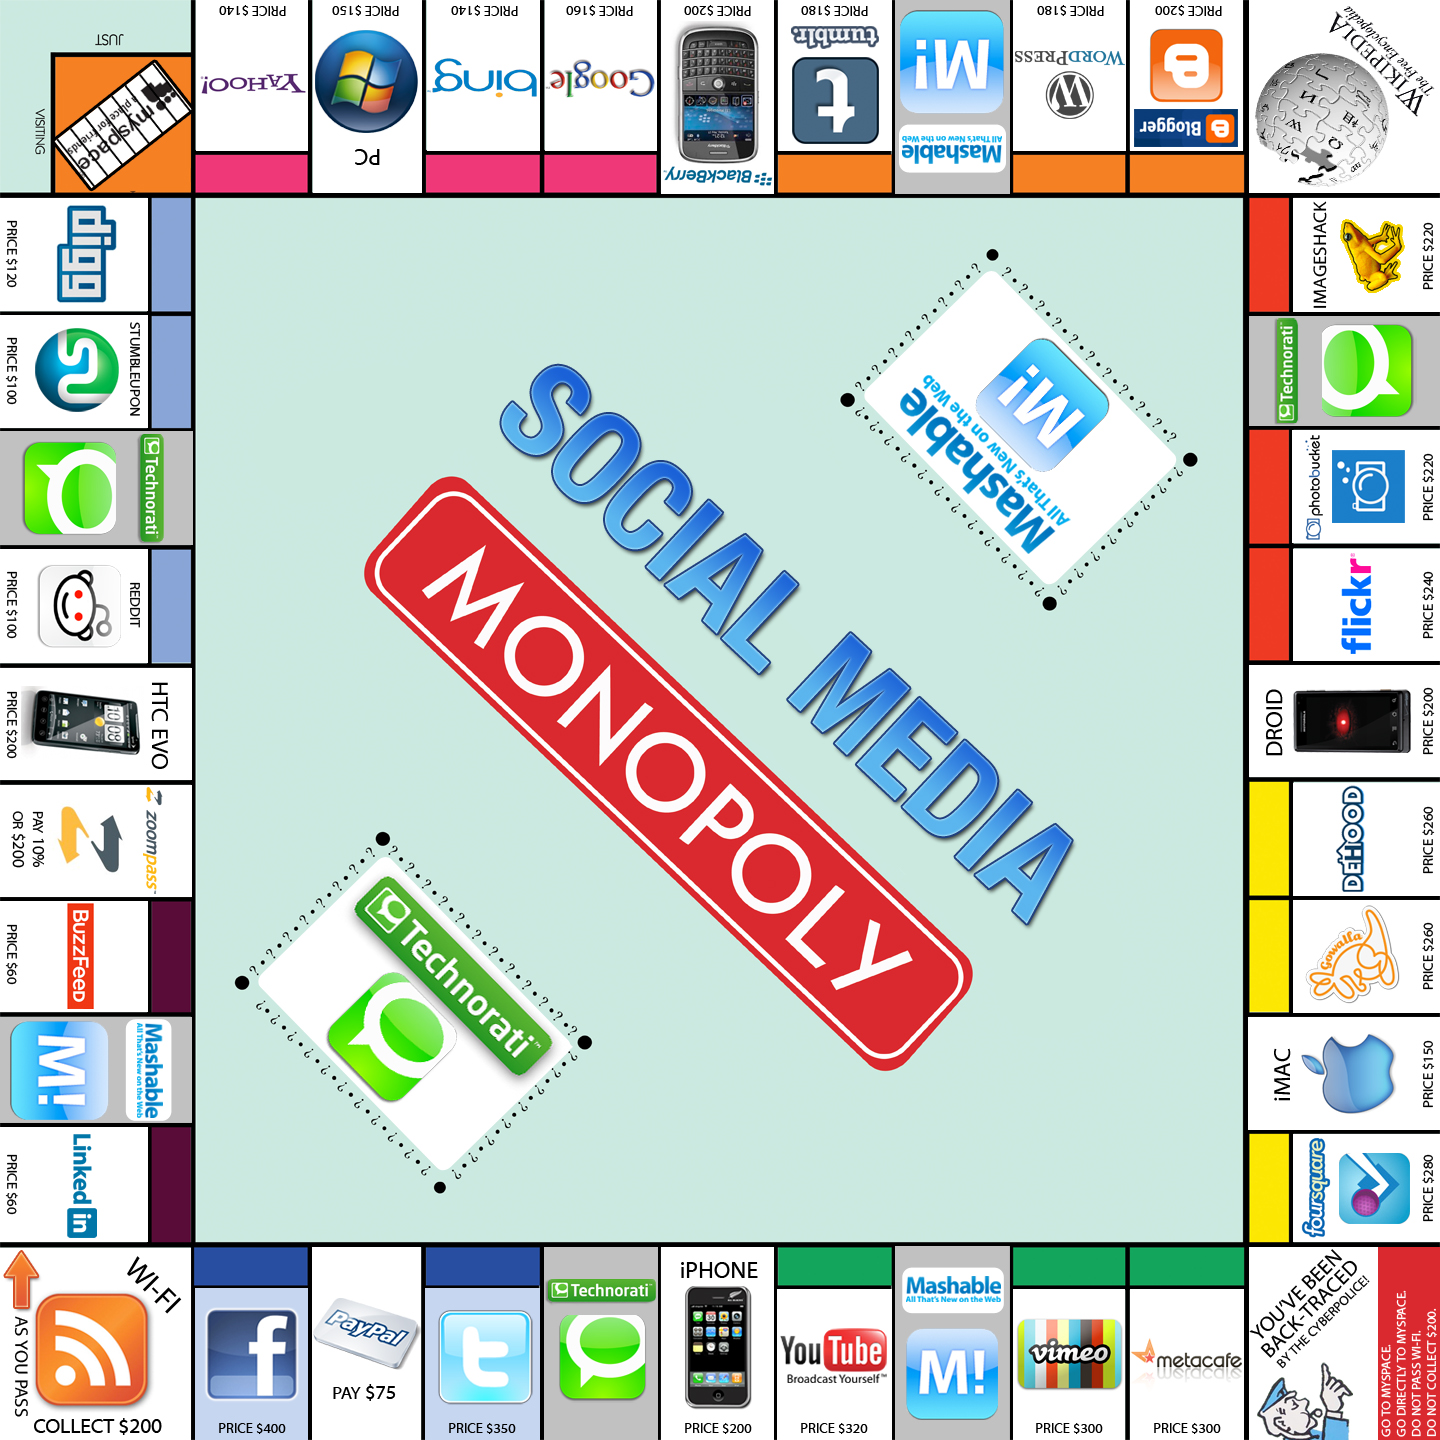 The Social Media version of Monopoly